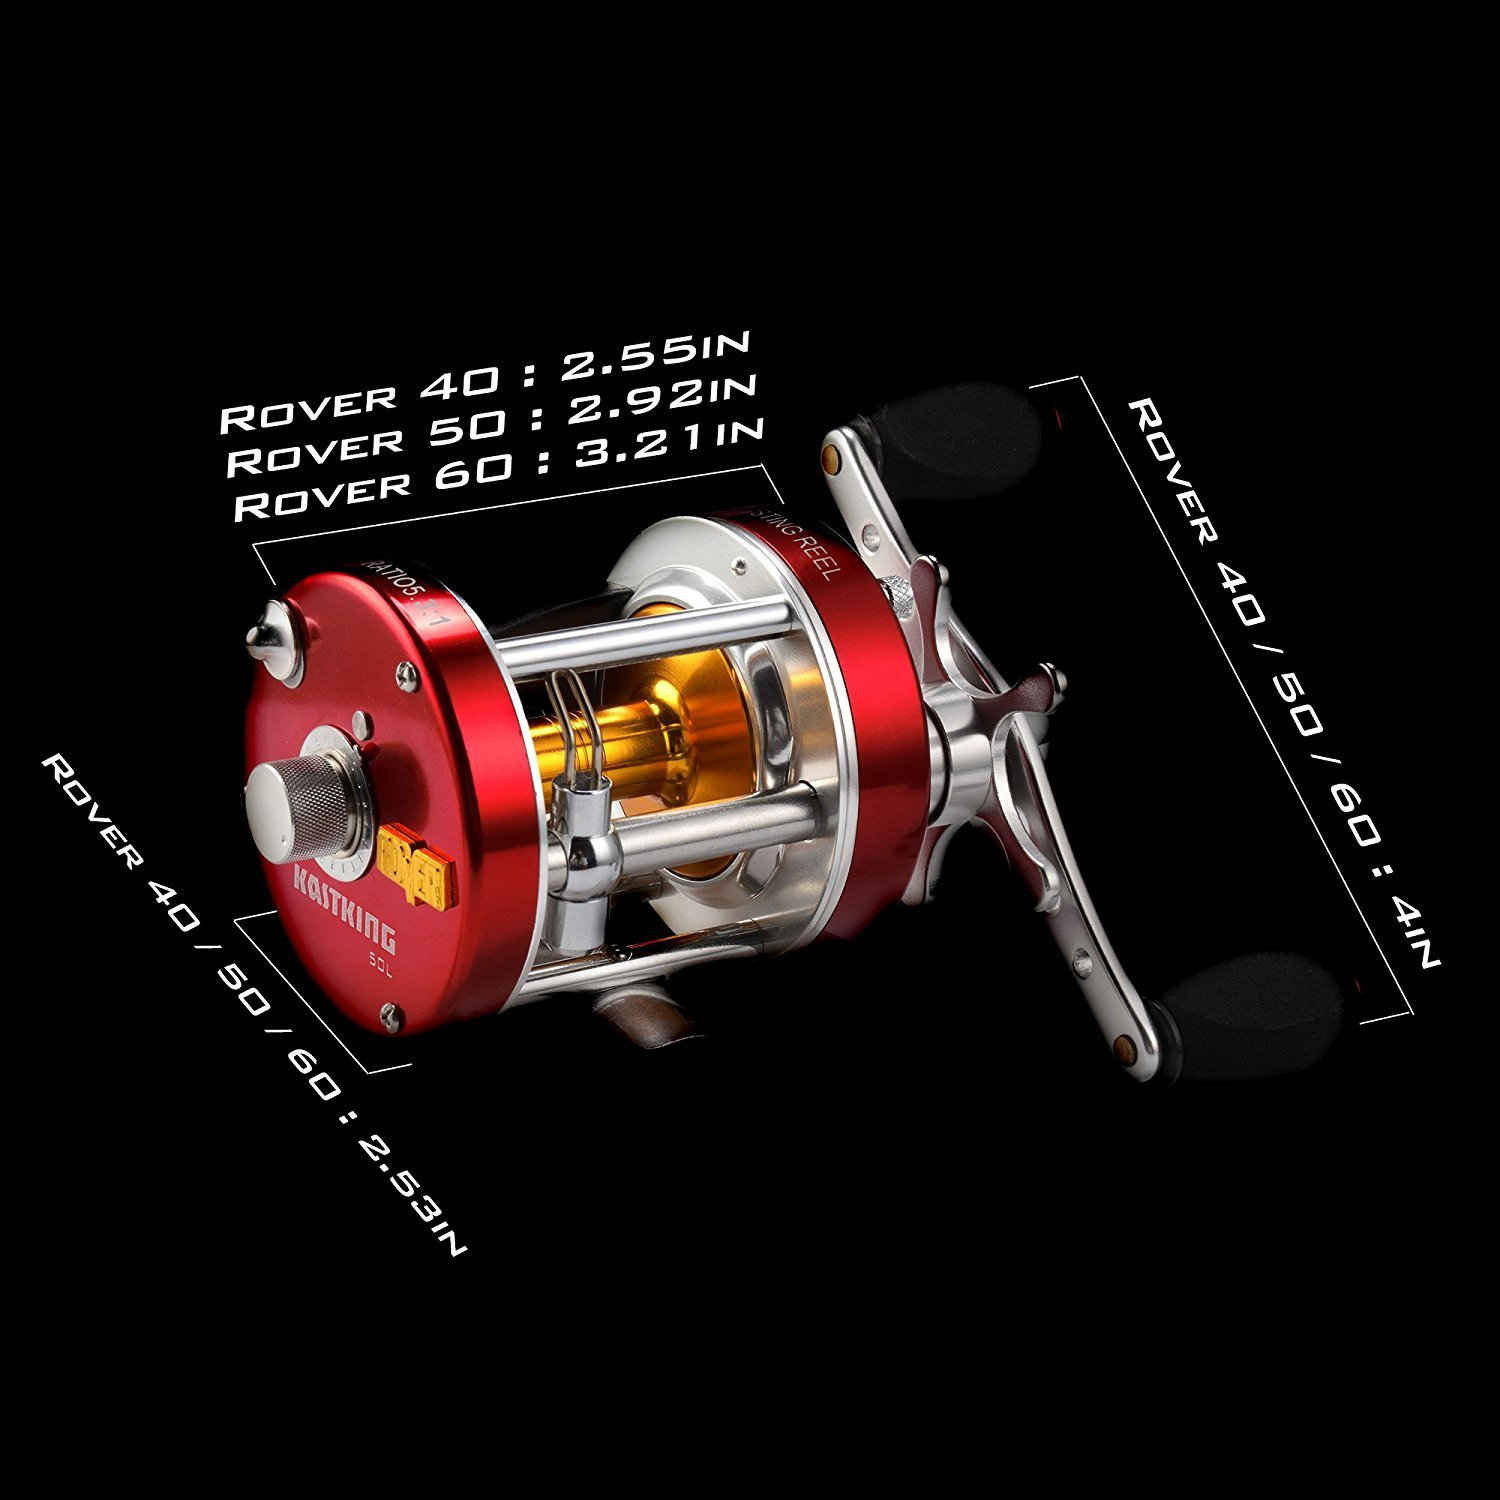 KastKing Rover Round Baitcasting Reel, Right Handed Reel,Rover60 by KastKing (Image #9)